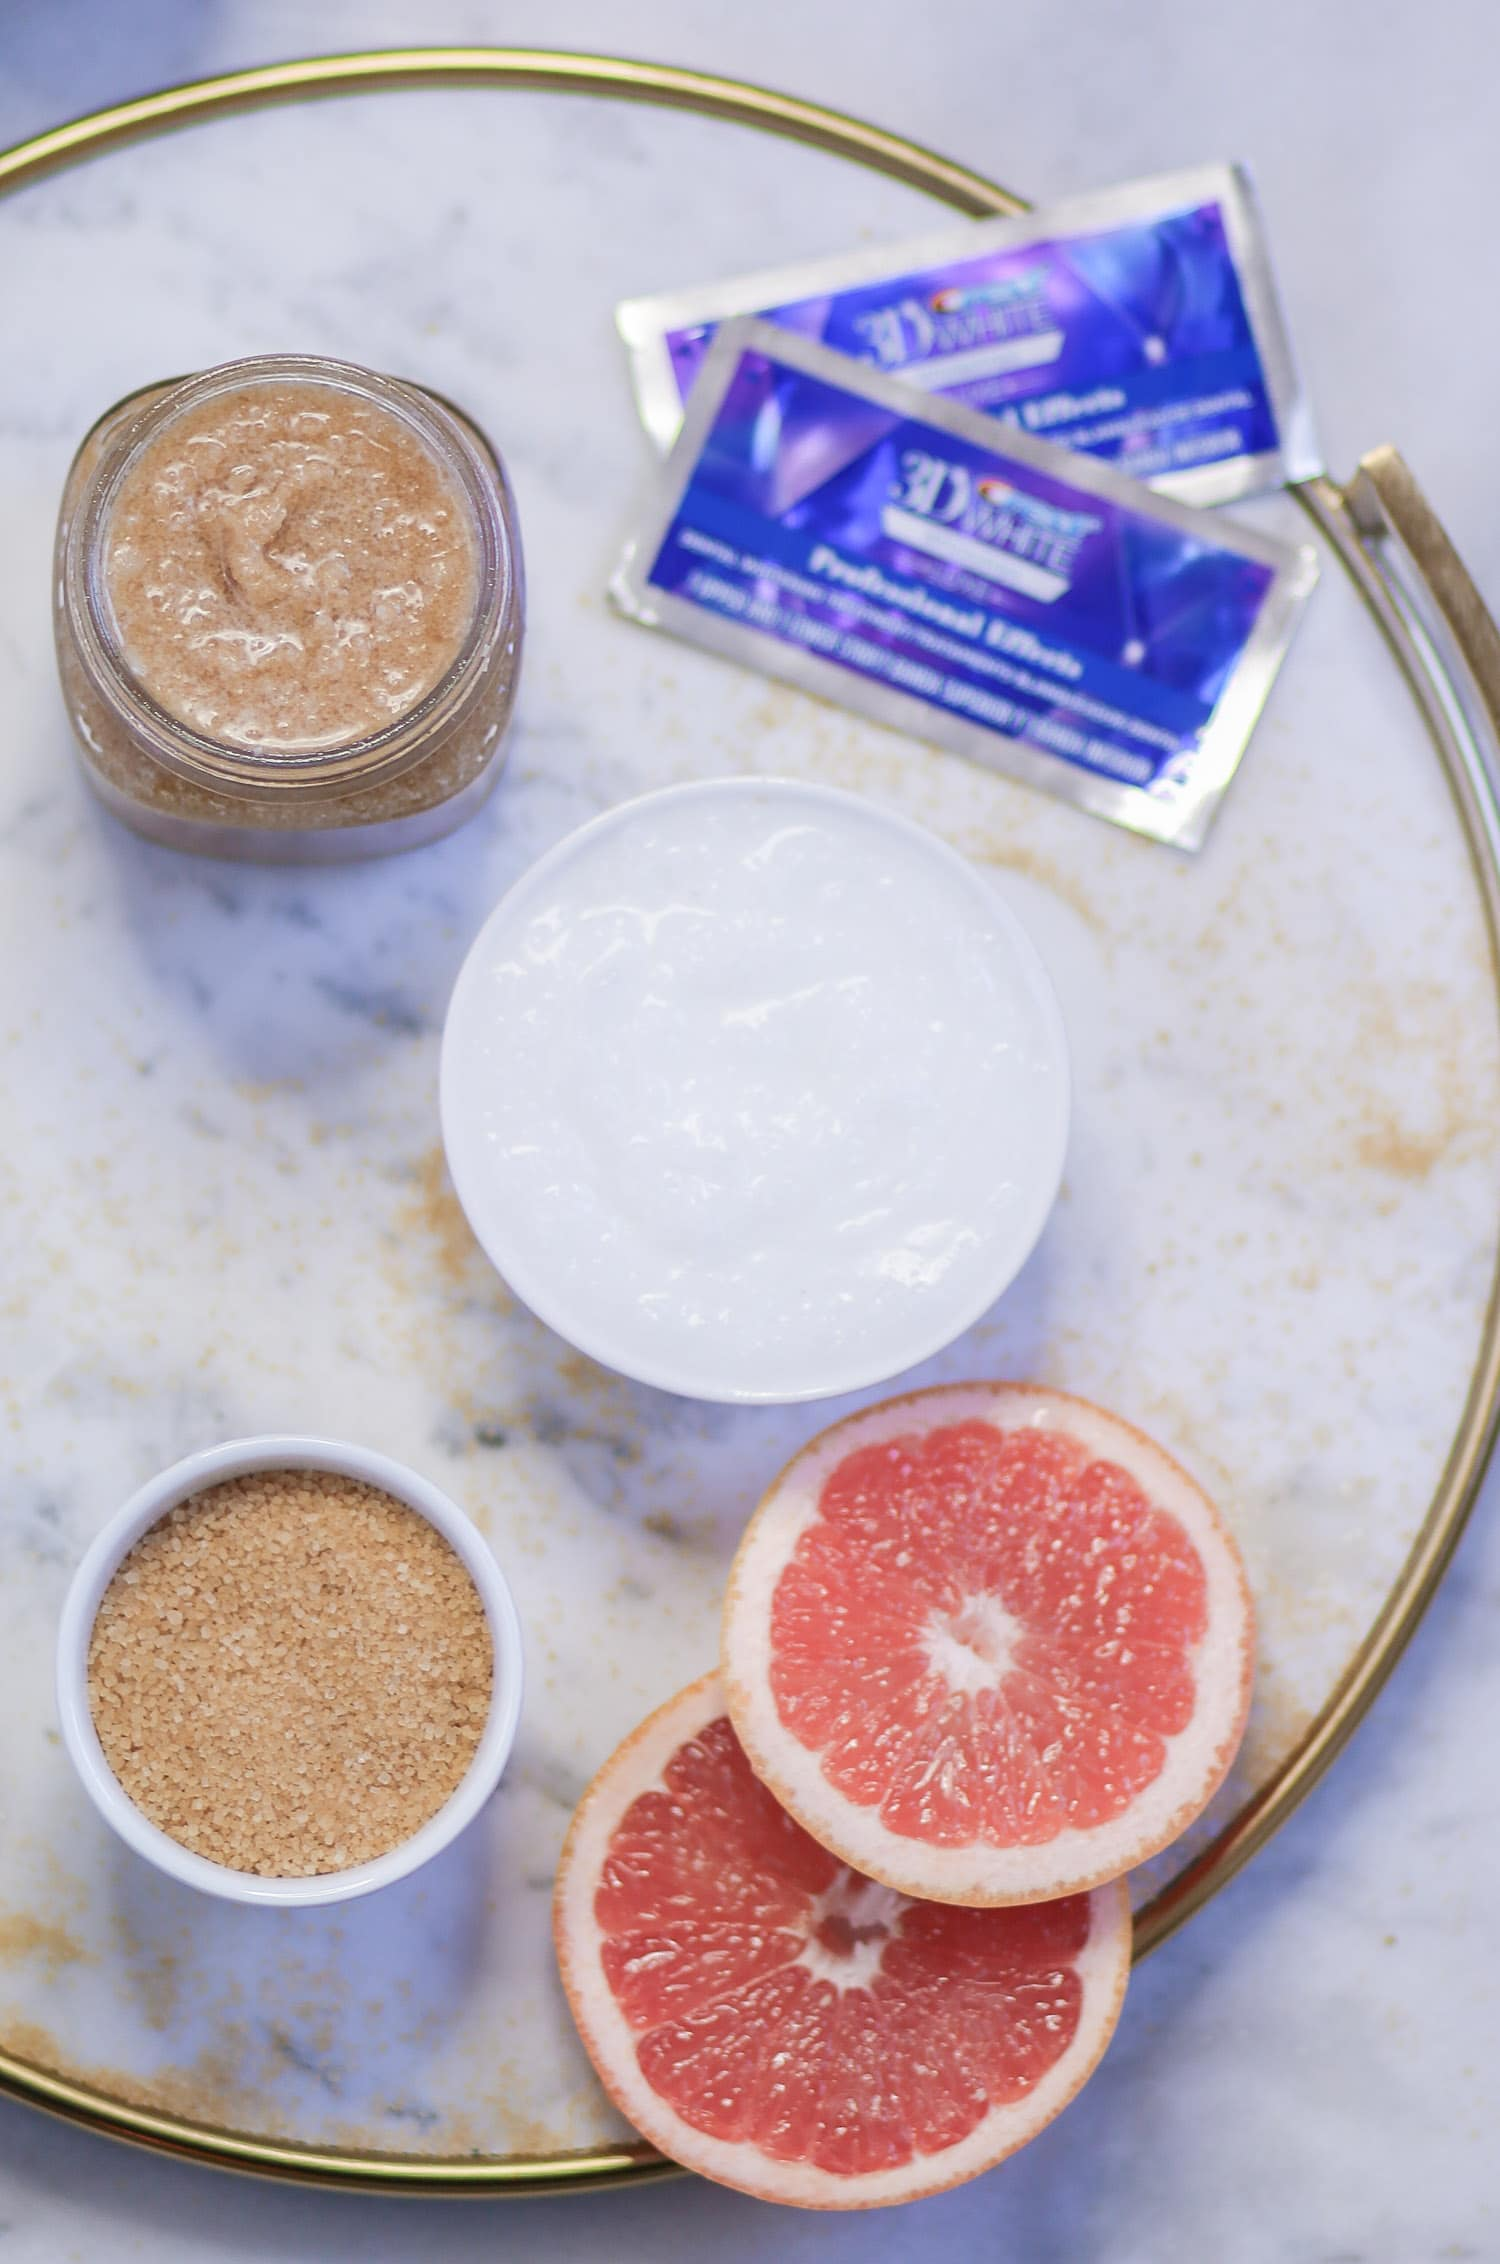 Get the softest lips at home with this easy DIY lip scrub recipe from beauty blogger Ashley Brooke from ashleybrookenicholas.com!